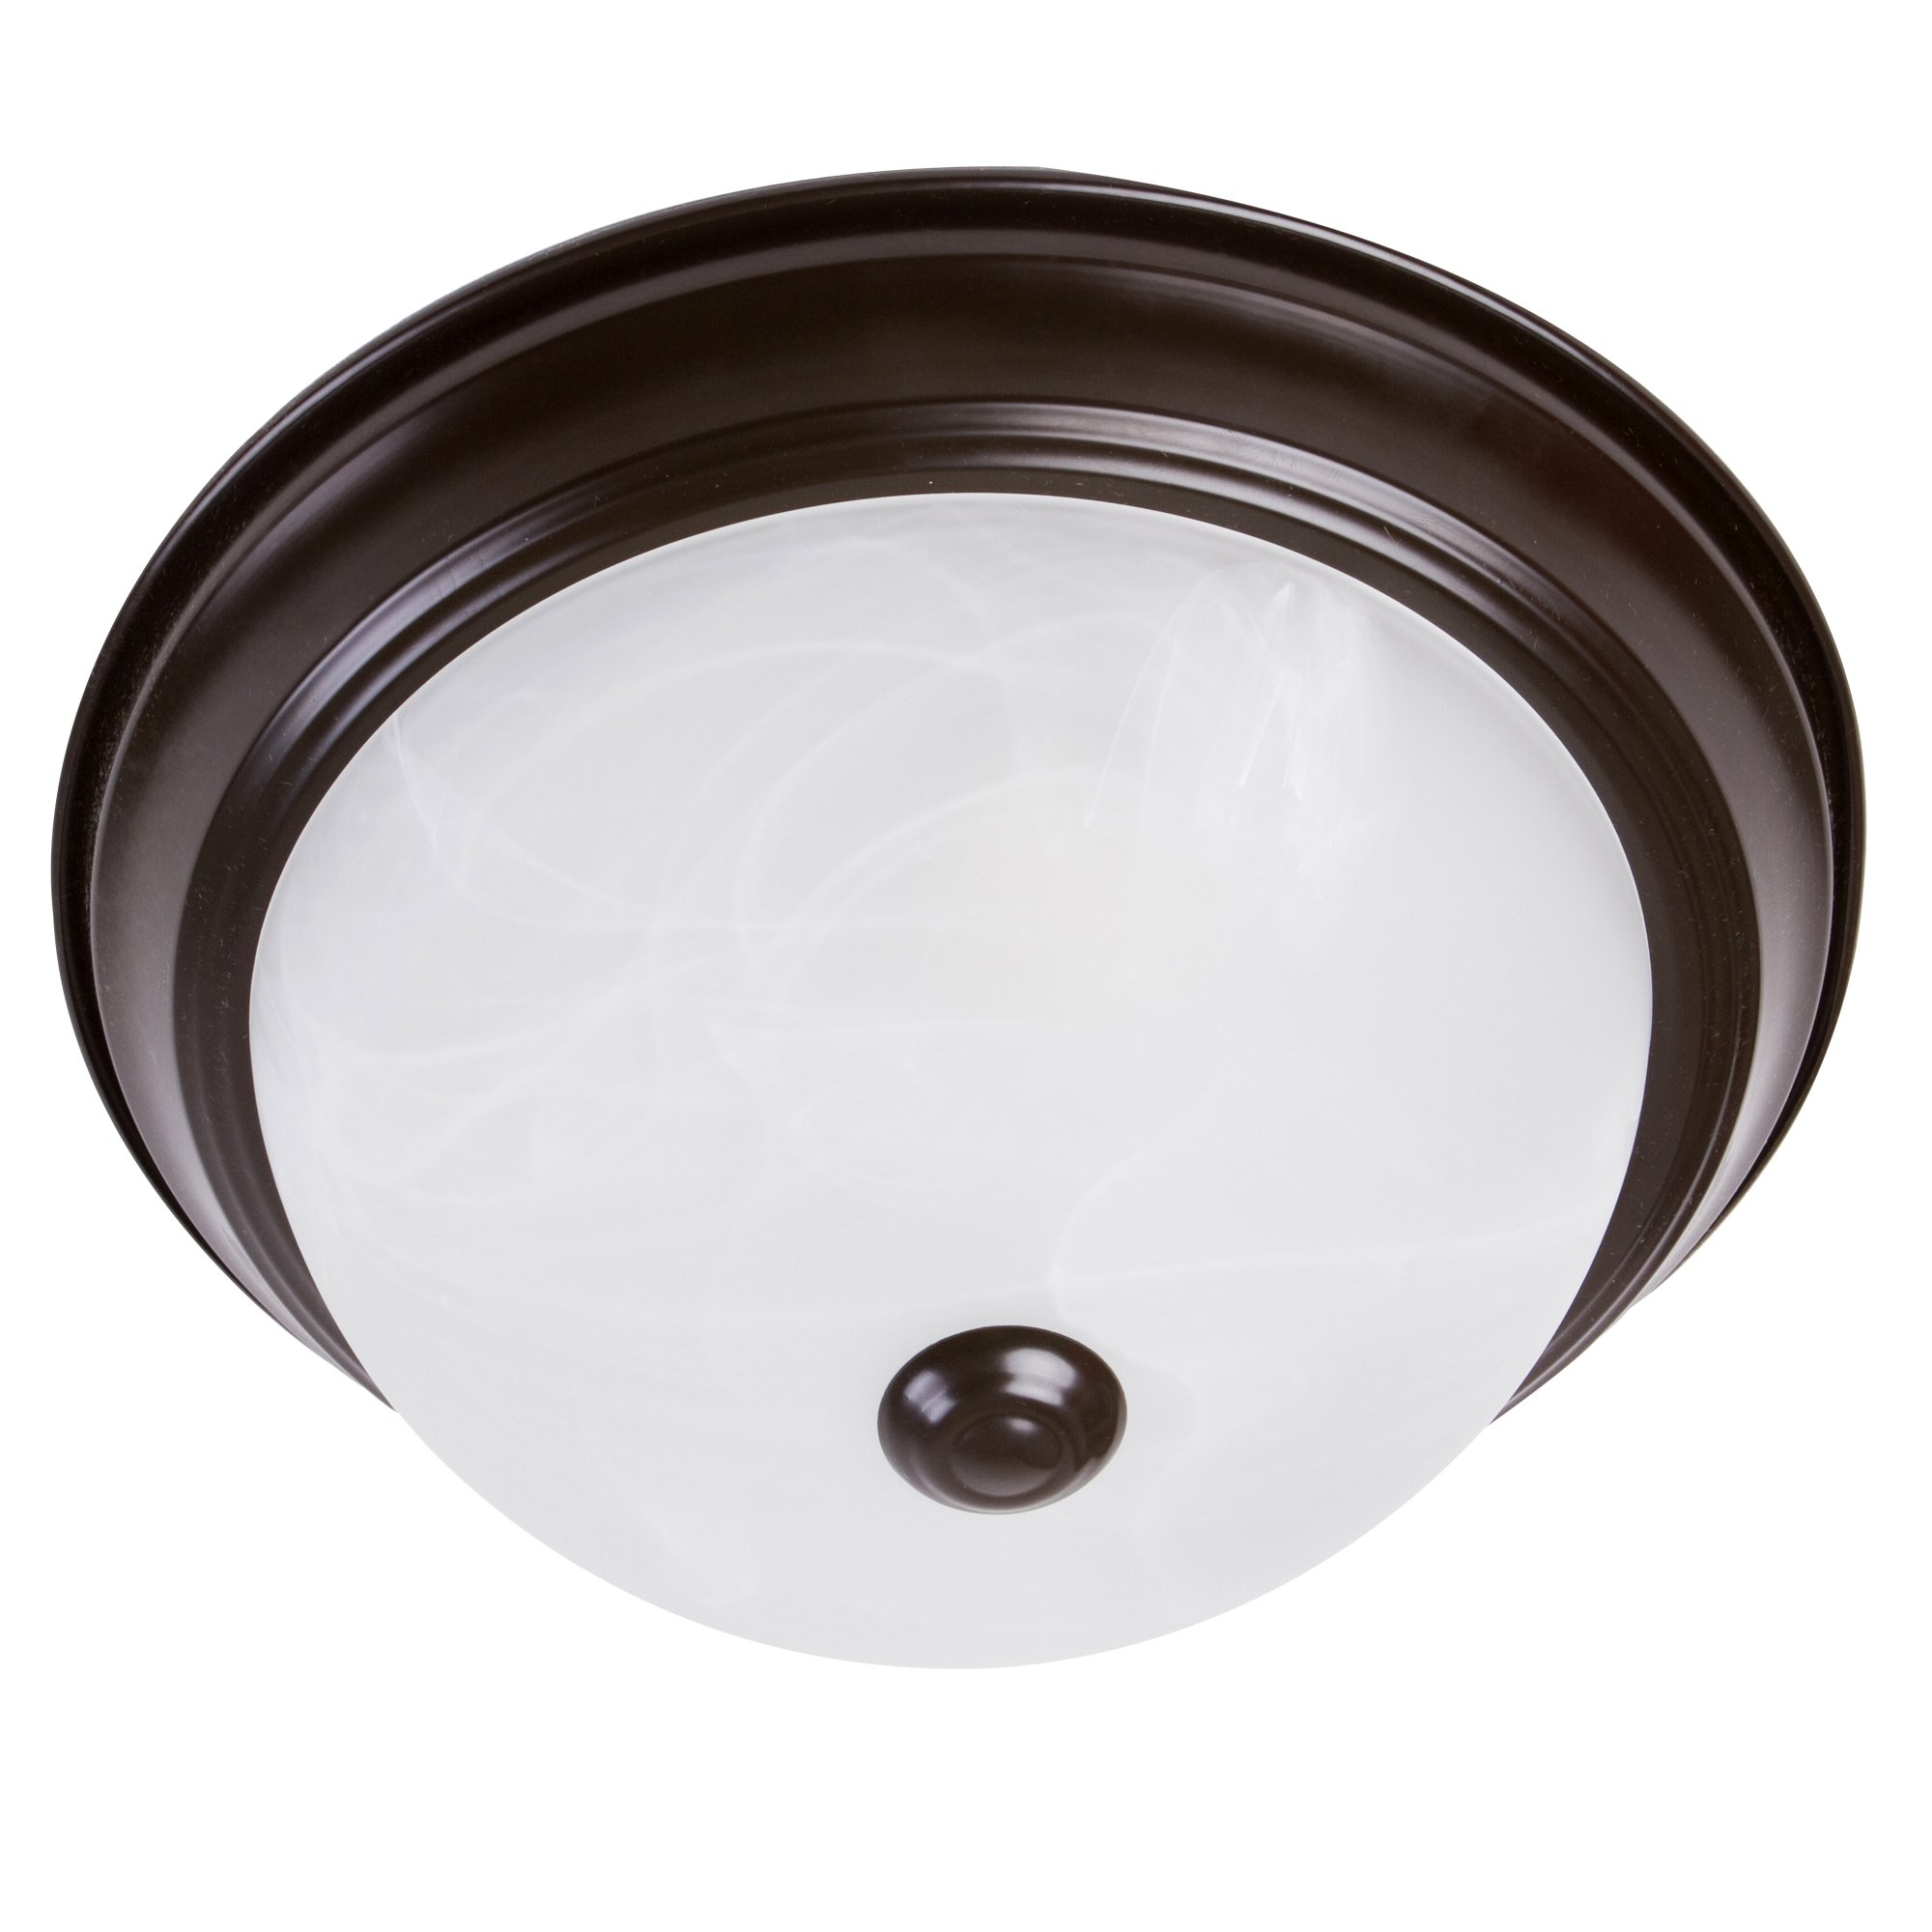 Yosemite Home Décor JK101-11ORB Flush Mount Series Two Lights Incandescent, Oil Rubbed Bronze by Yosemite Home Decor